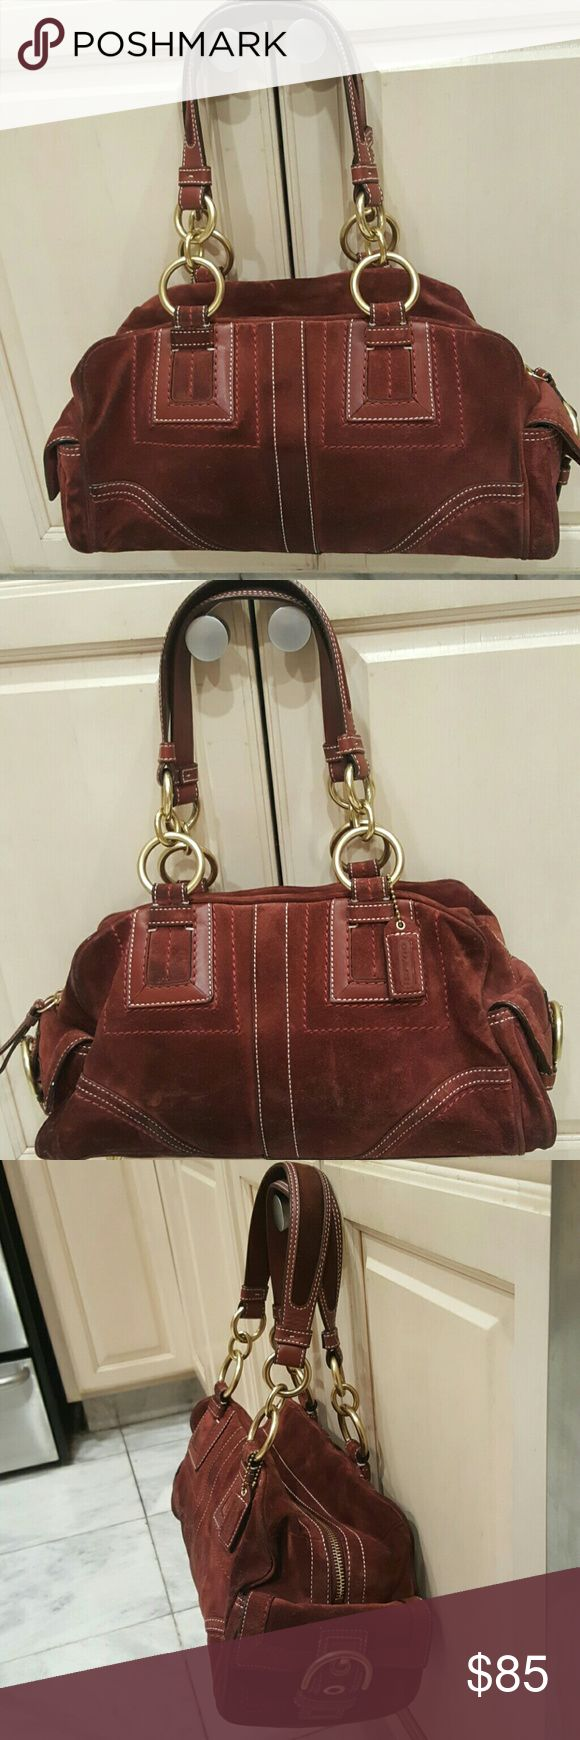 Coach pocketbook Coach doctor style pocketbook,  Burgundy suede,  with gold color hardware.   Suede on both sides slightly darkened due to wearing friction, but otherwise in very good condition.   Lining I'm excellent condition. Coach Bags Satchels